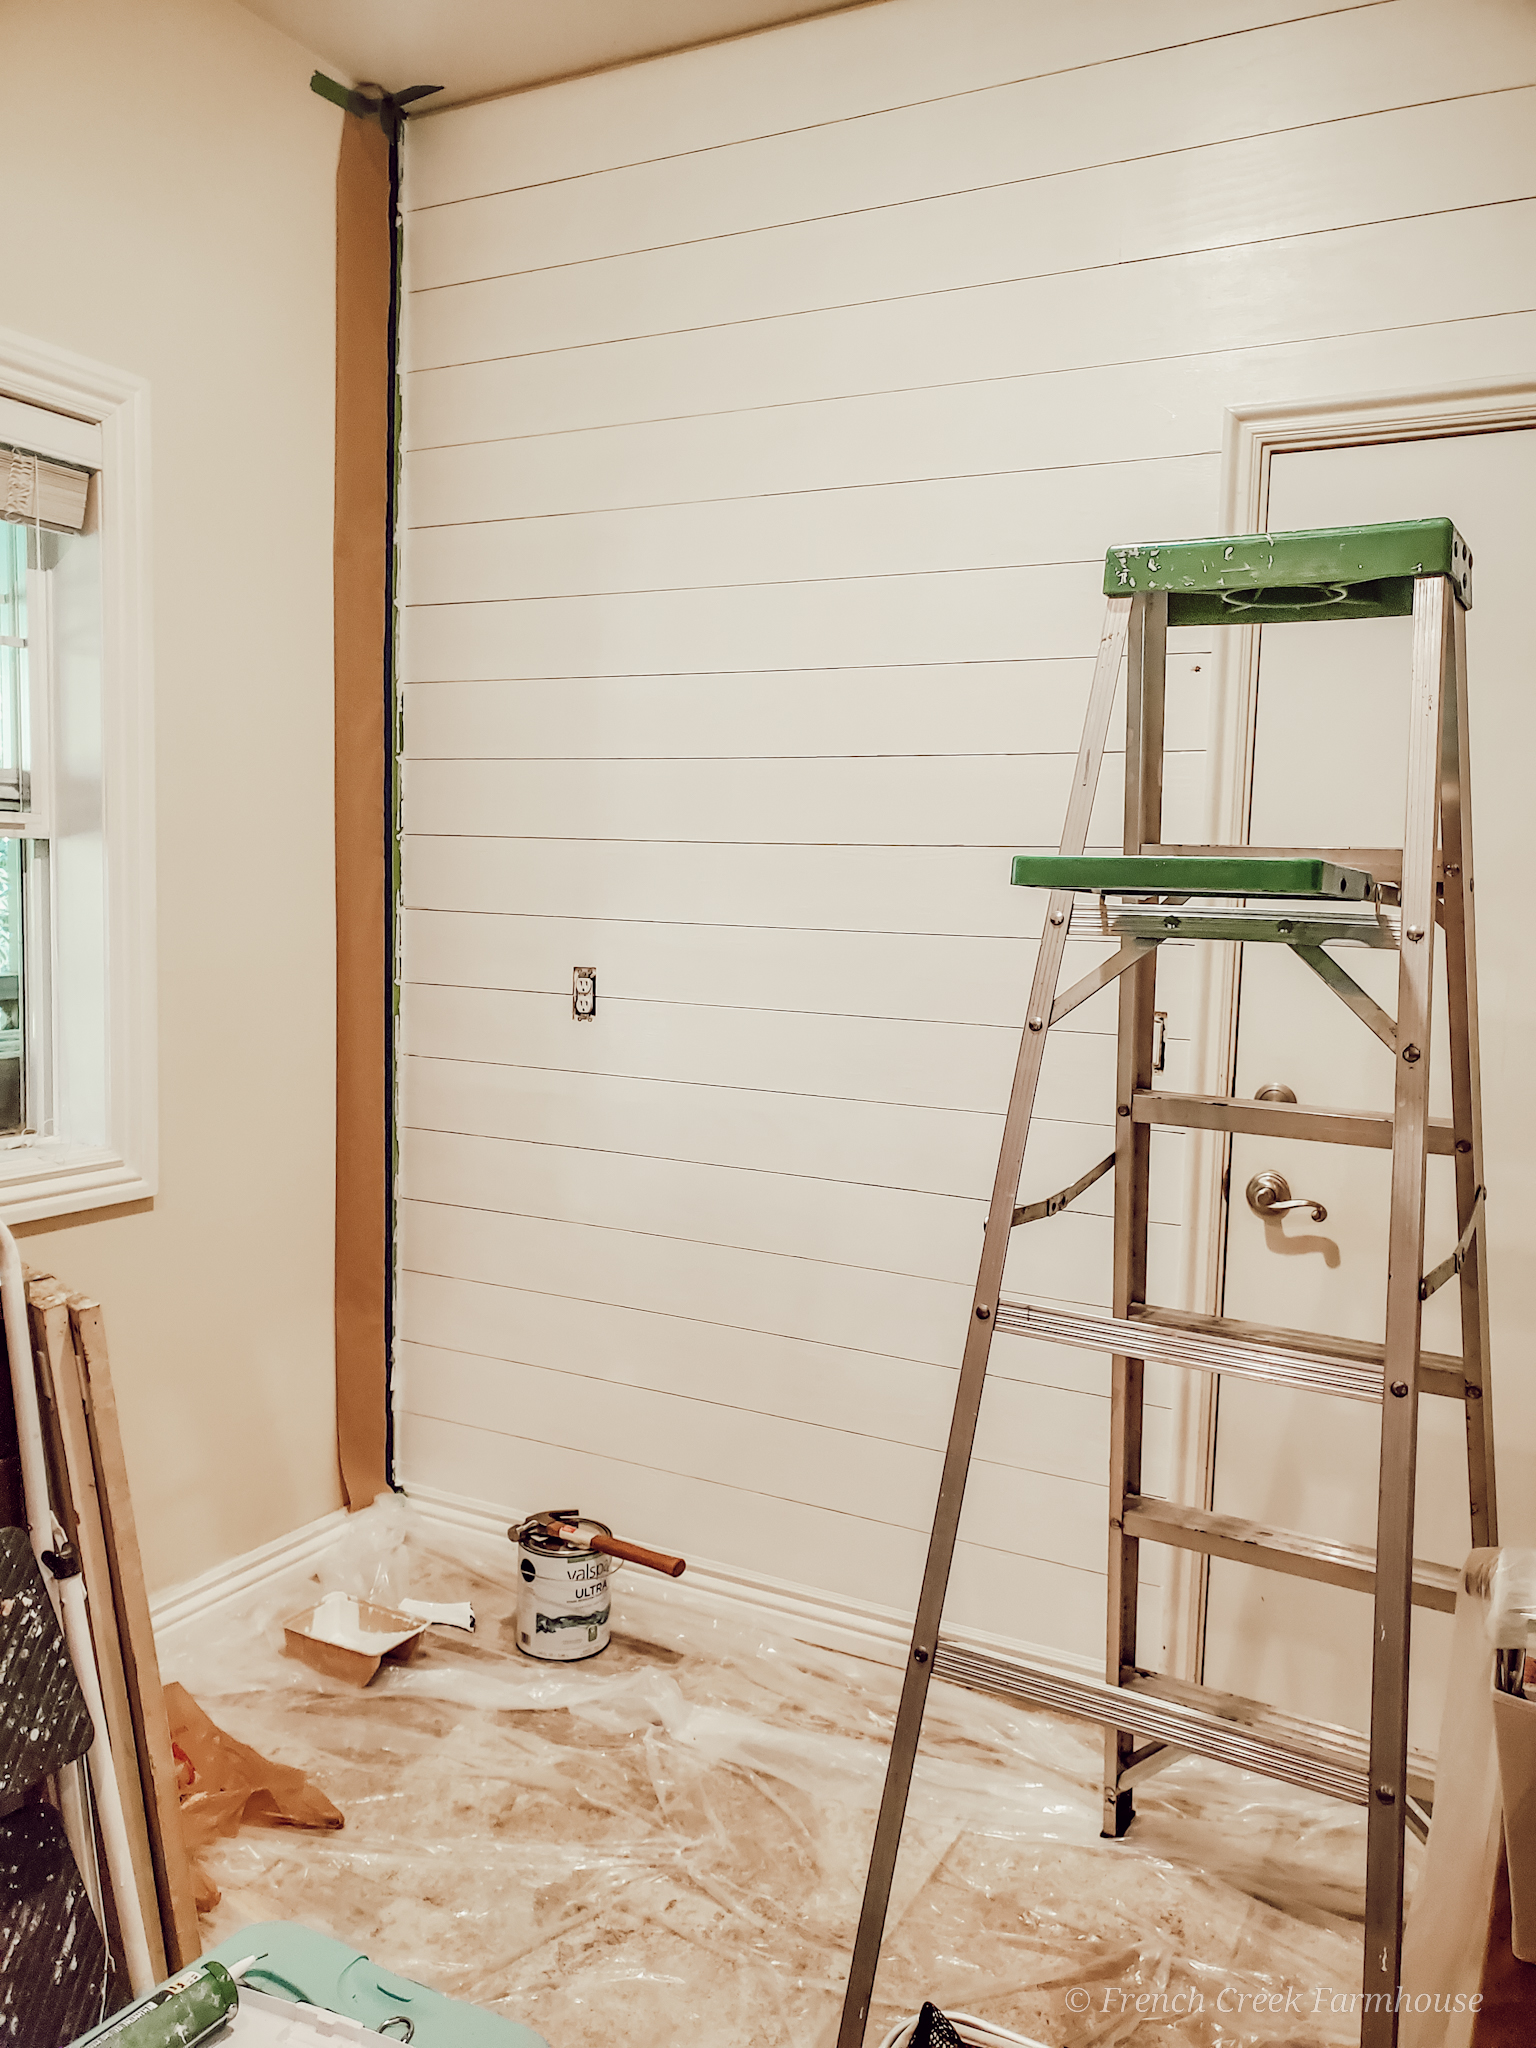 See the progress we made during Week 3 of our laundry room renovation